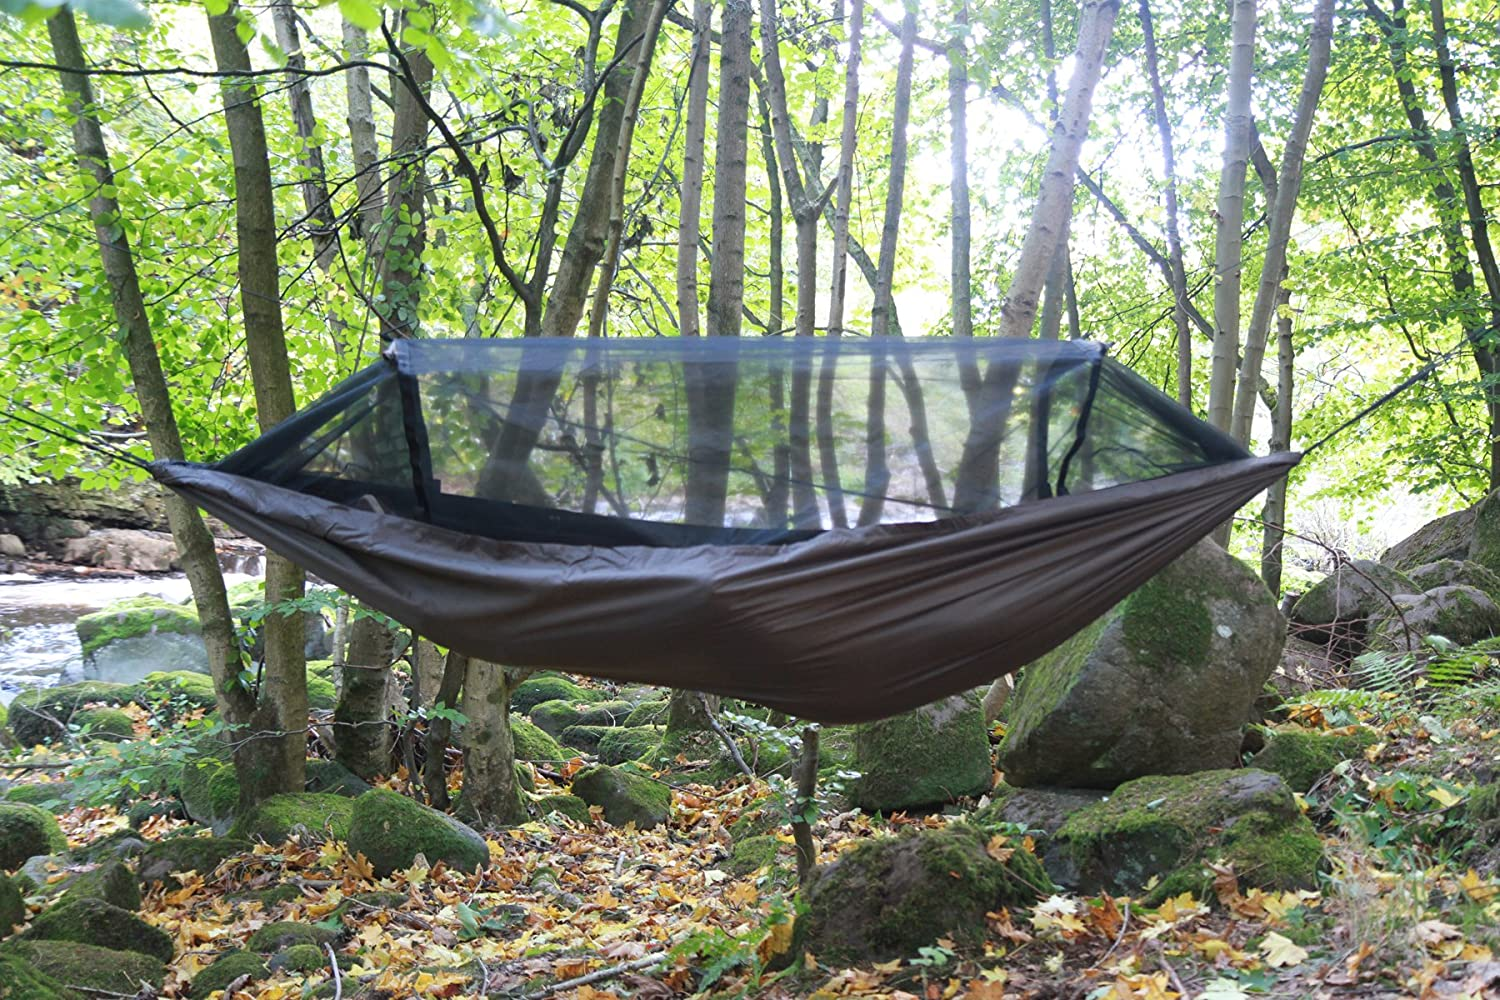 dd travel hammock   bivi   versatile  pact hammock or bivi  coyote brown   amazon co uk  sports  u0026 outdoors dd travel hammock   bivi   versatile  pact hammock or bivi      rh   amazon co uk